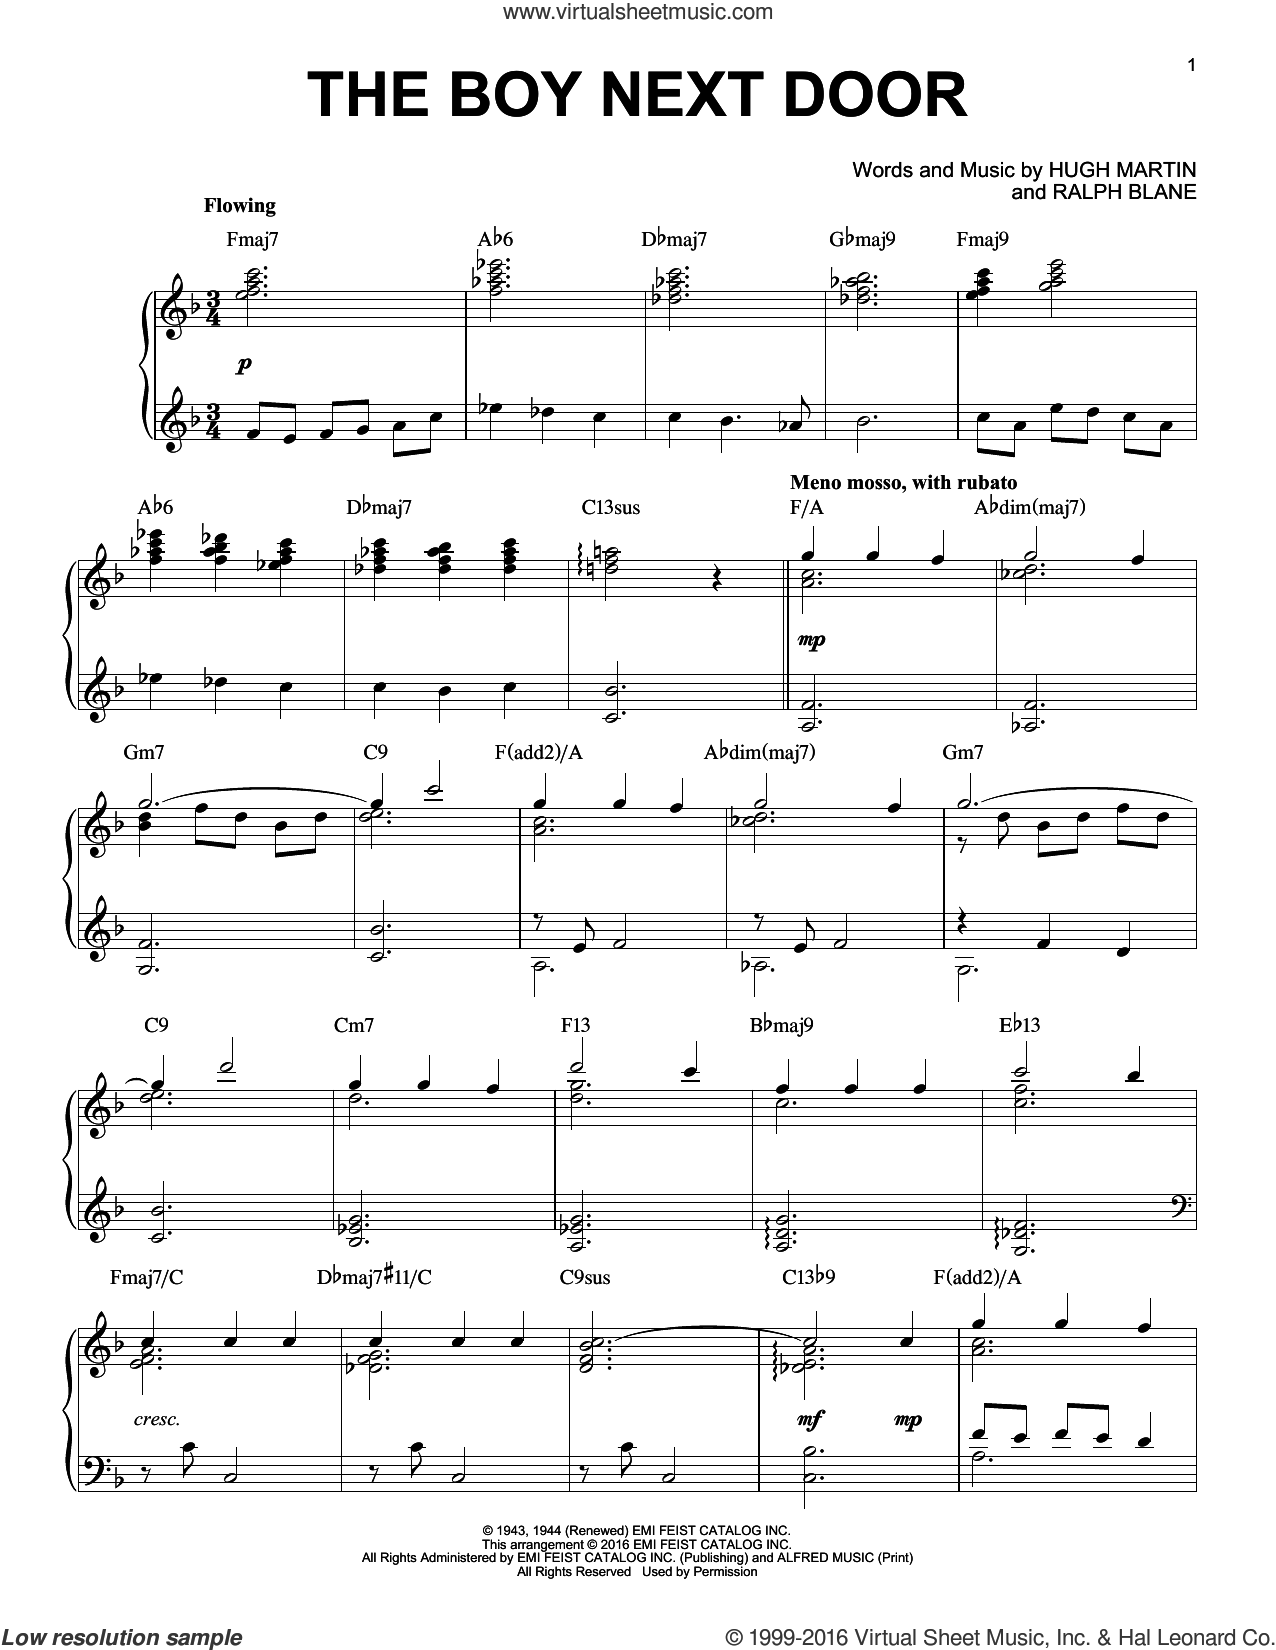 The Boy Next Door sheet music for piano solo by Hugh Martin, Secrets and Ralph Blane, intermediate skill level